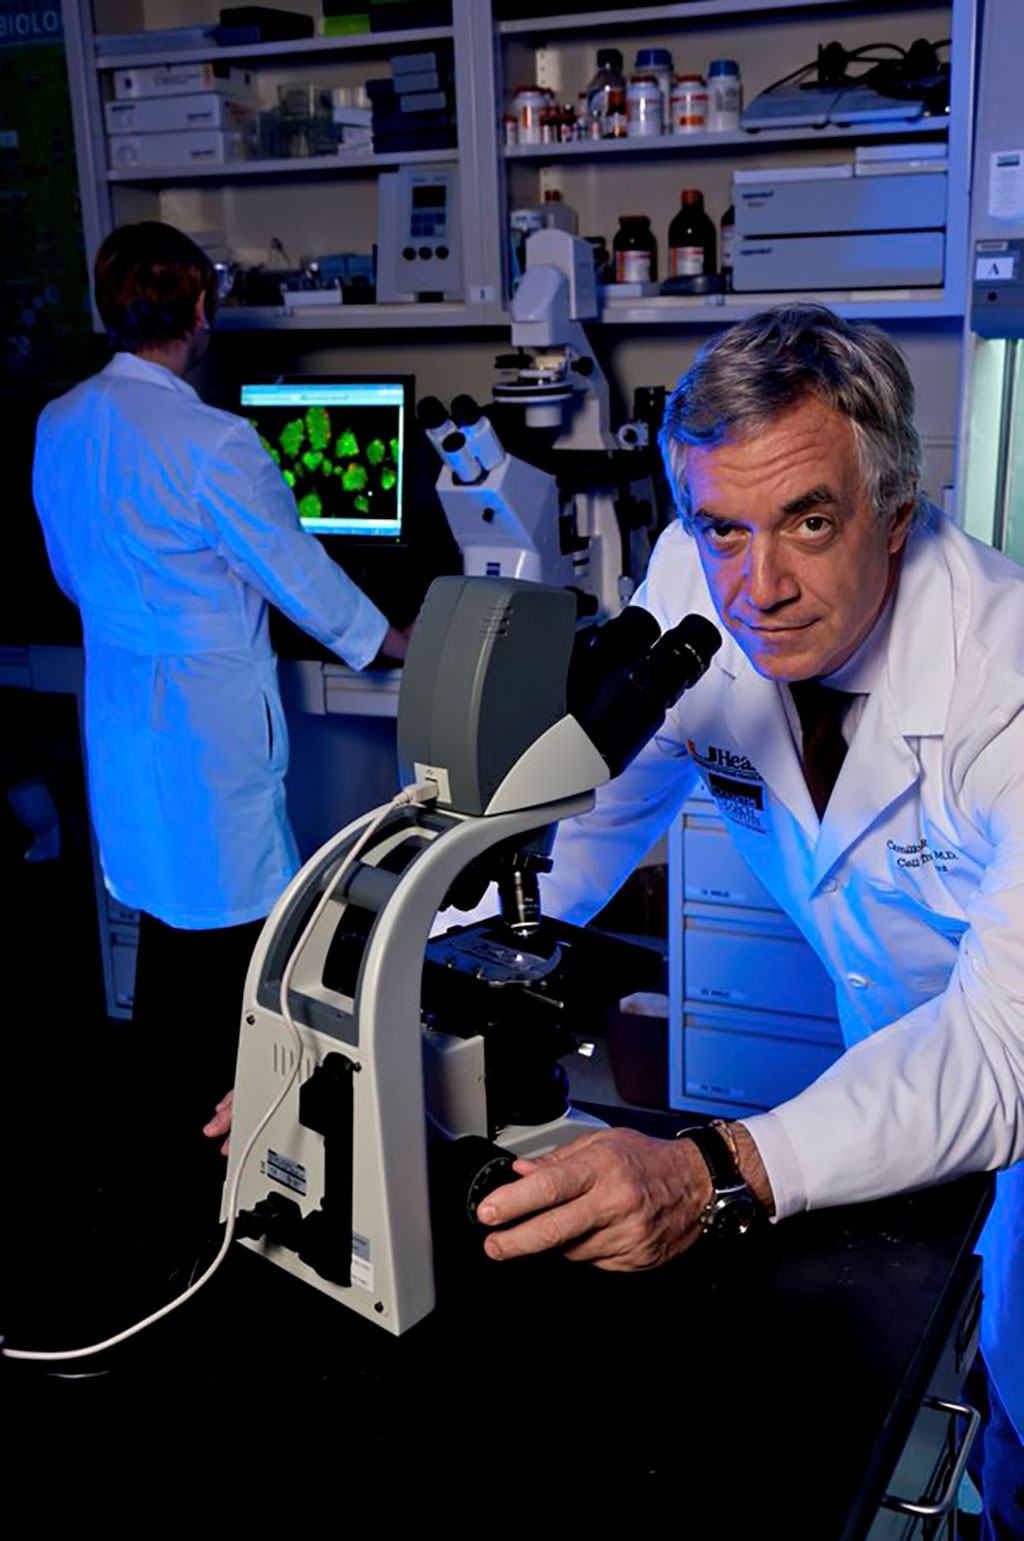 Image: Camillo Ricordi, M.D., director of the Diabetes Research Institute (DRI) and Cell Transplant Center at the University of Miami Miller School of Medicine (Photo courtesy of University of Miami Health System)